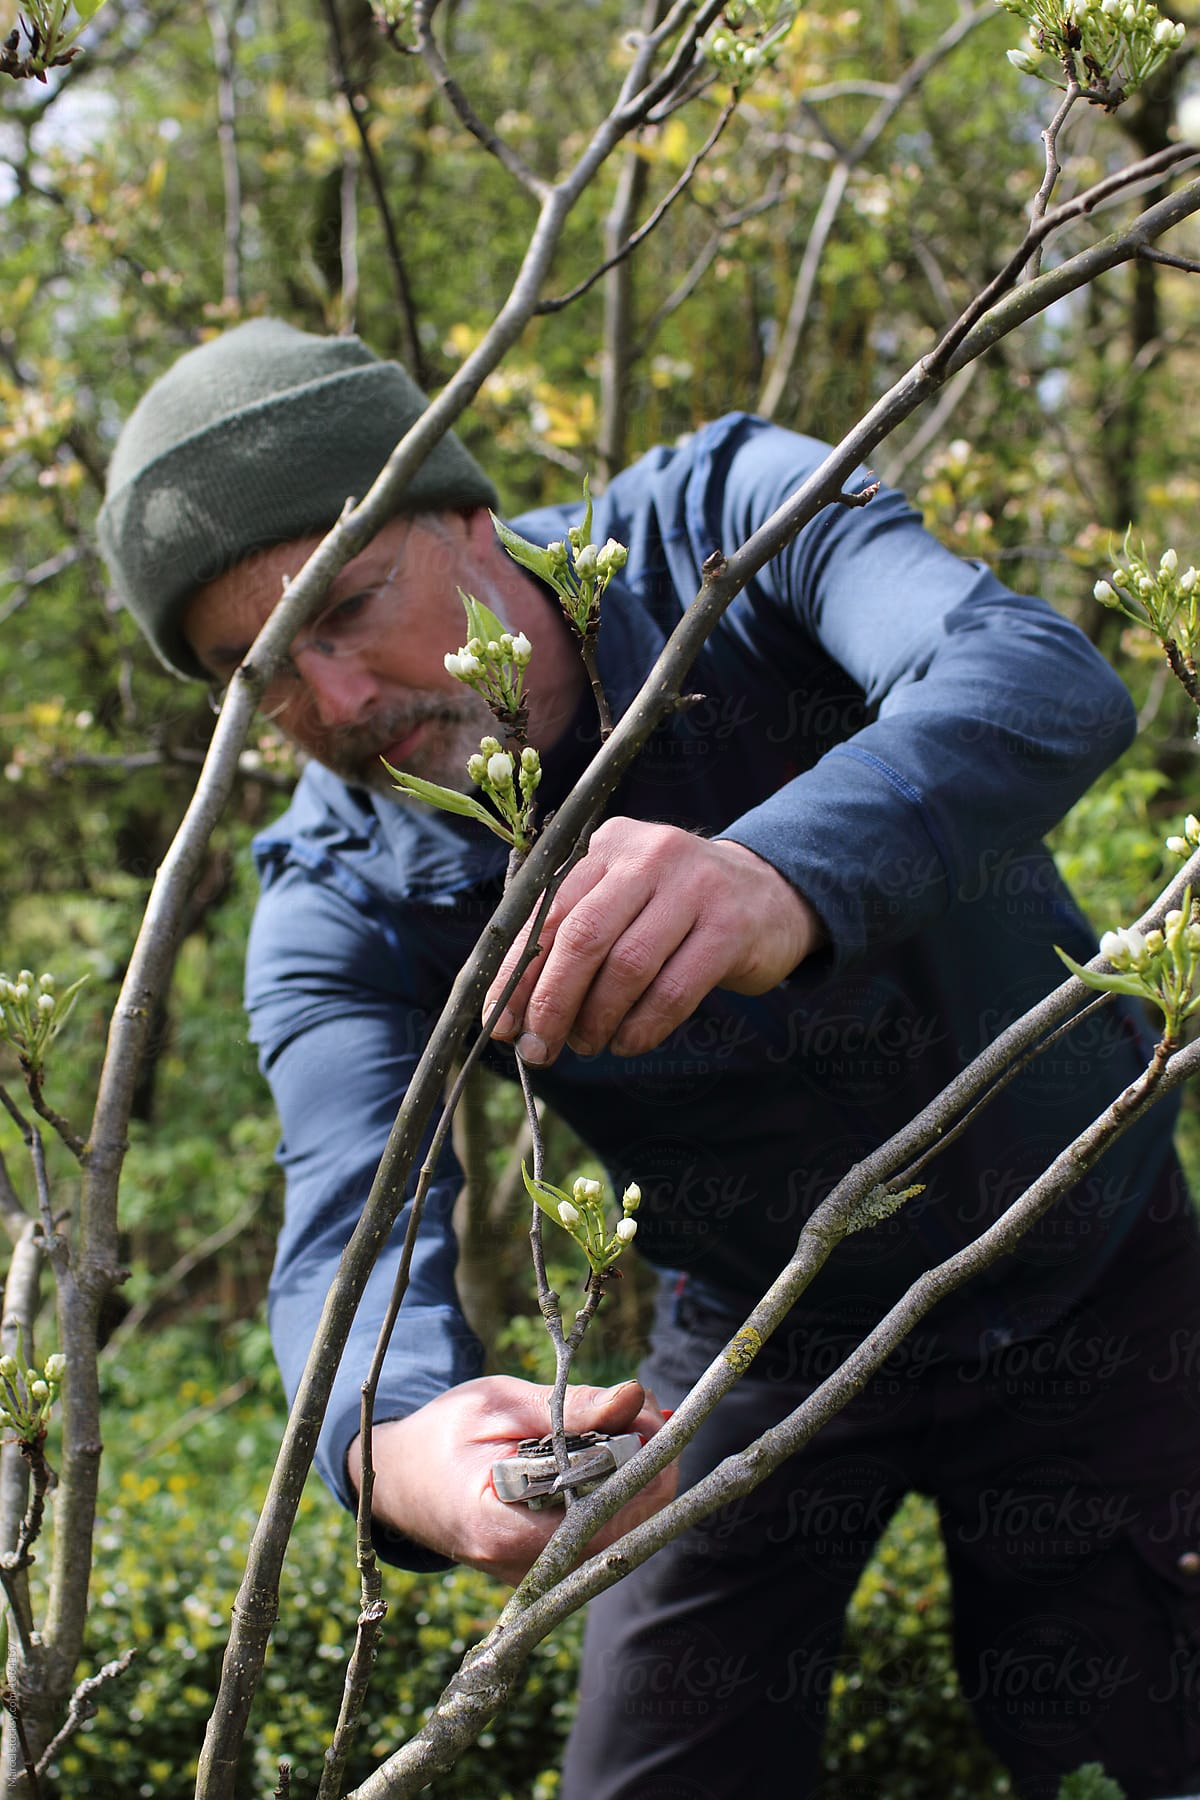 Man Cutting A Misplaced Branch In Fruit Tree By Marcel For Stocksy United